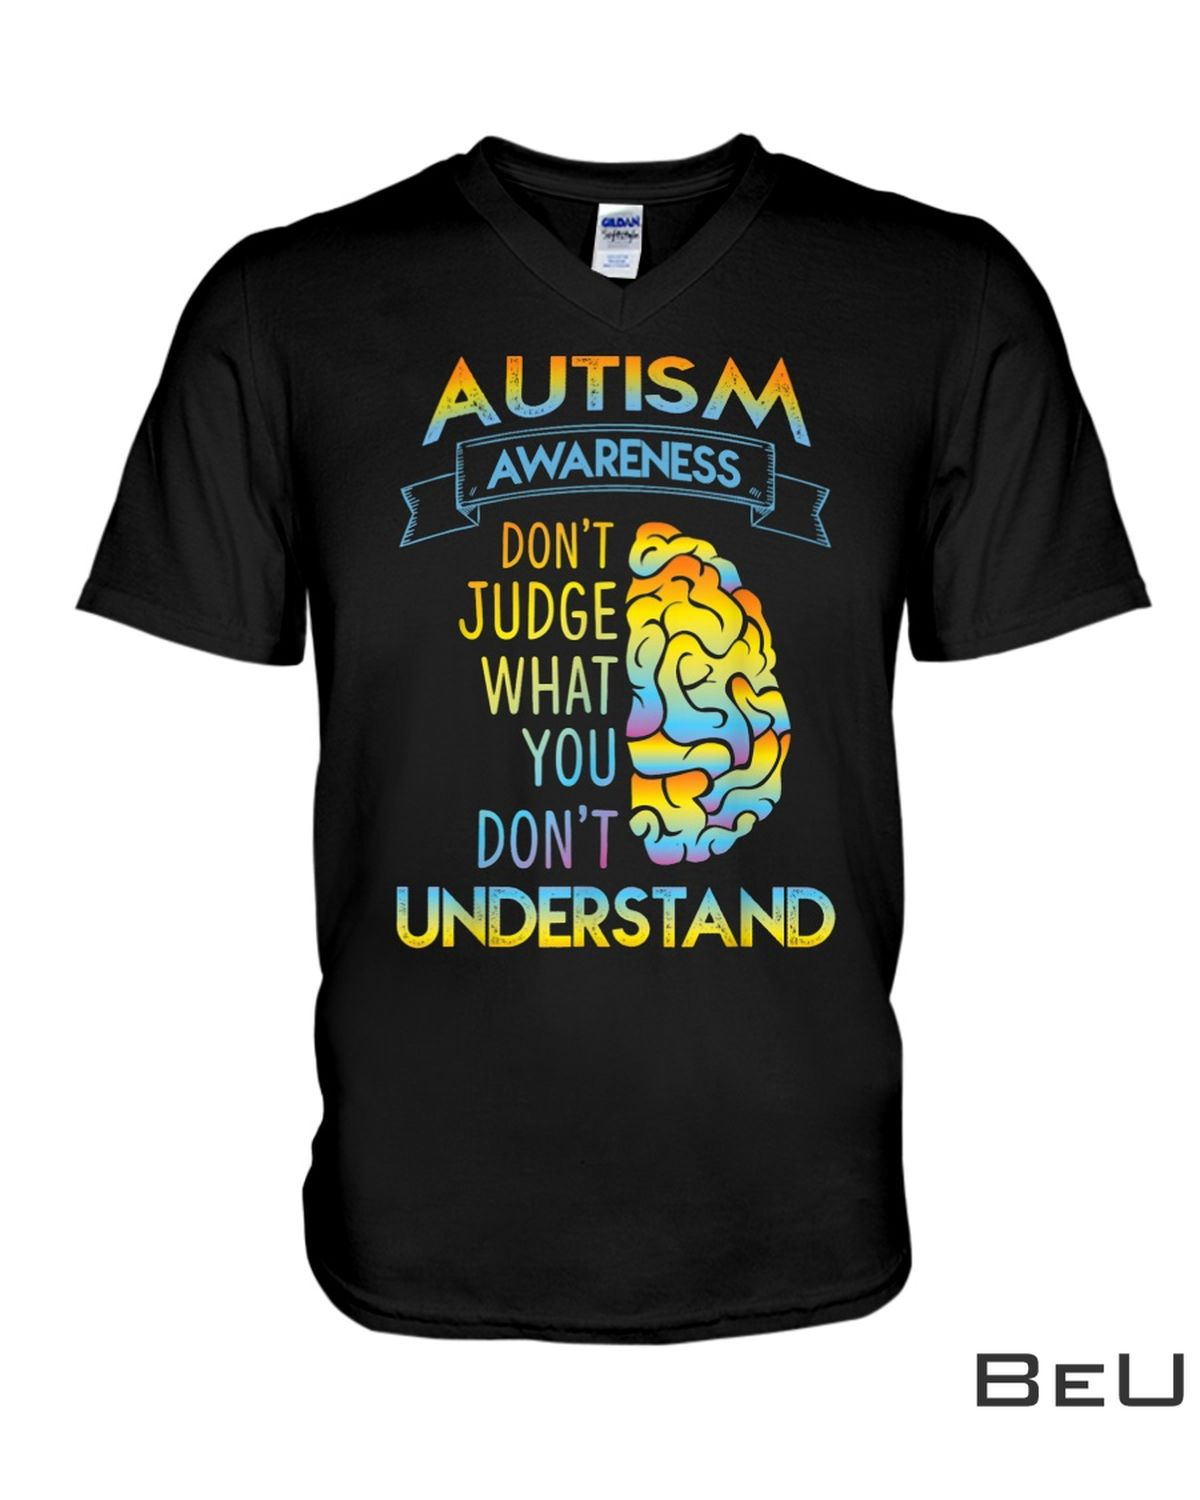 Autism Awareness Don't Judge What You Don't Understand Shirt x